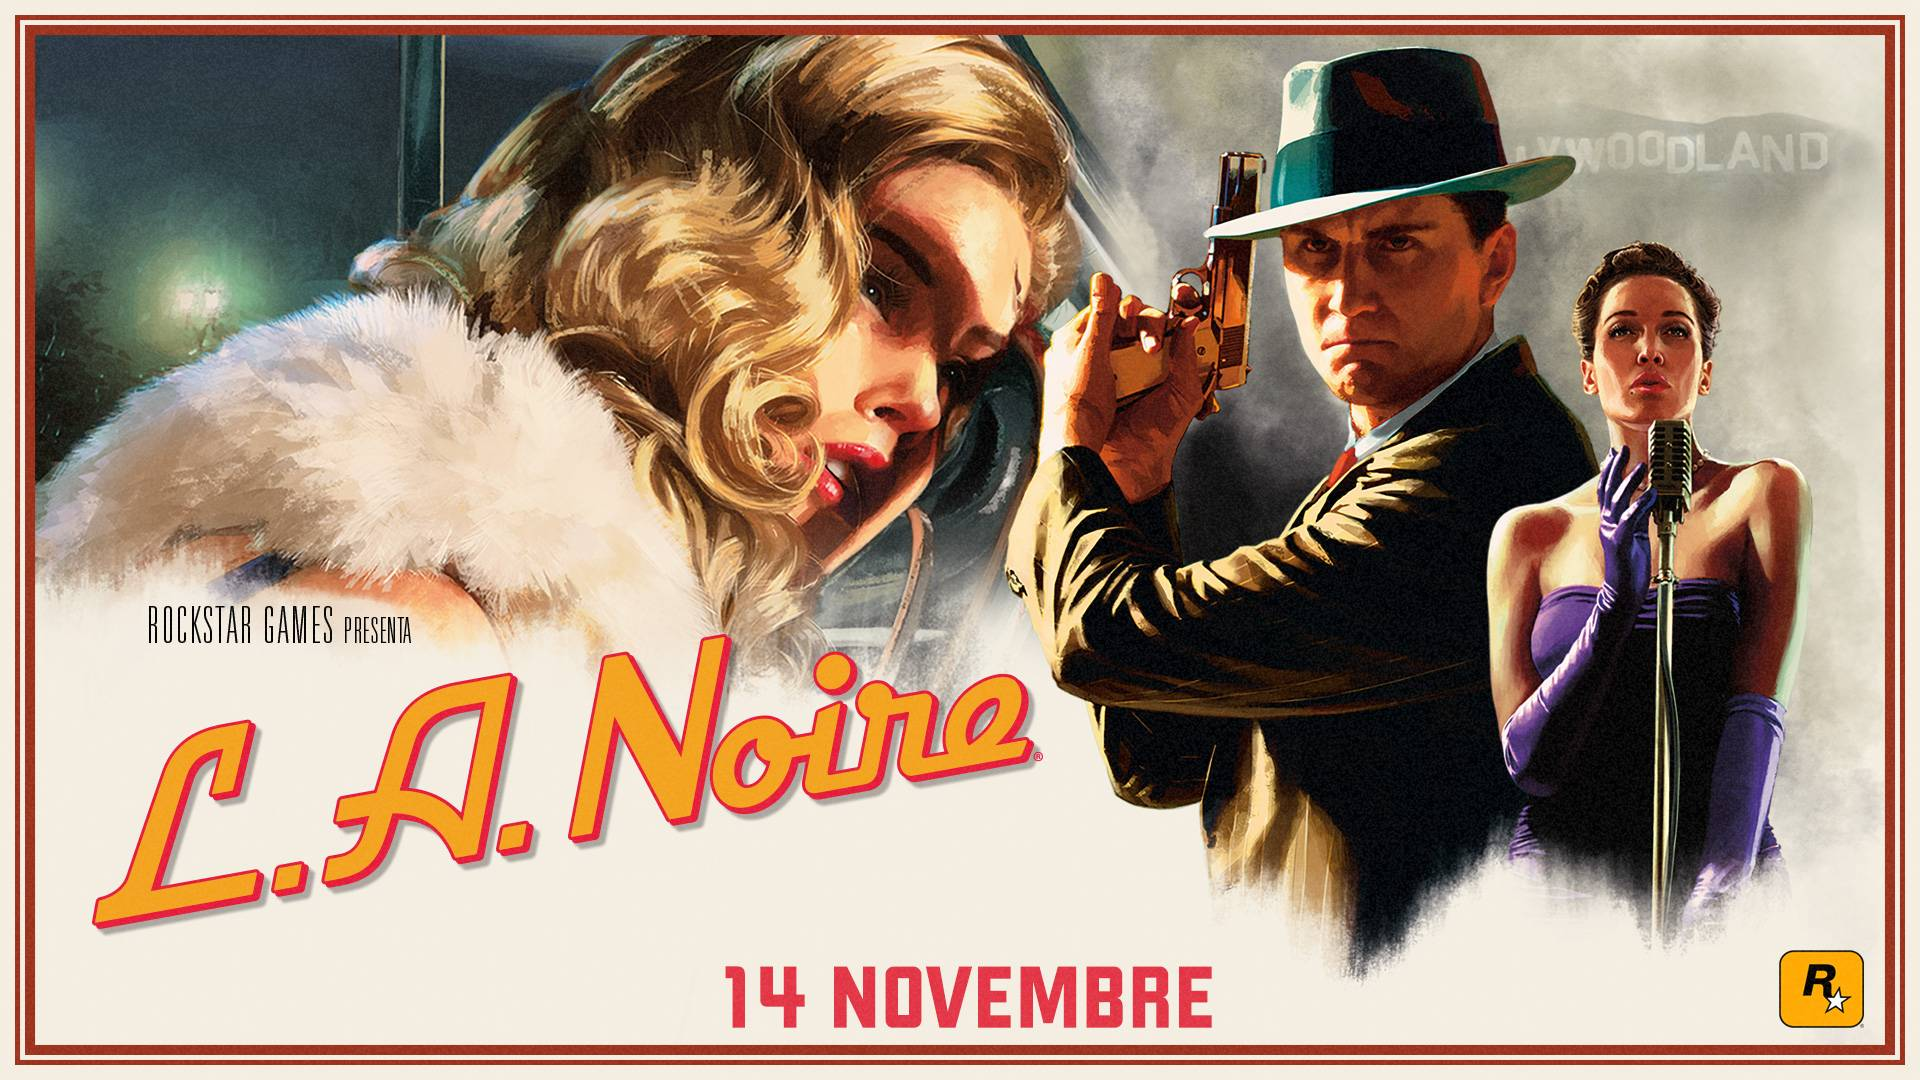 Los Angeles Noire _Artwork